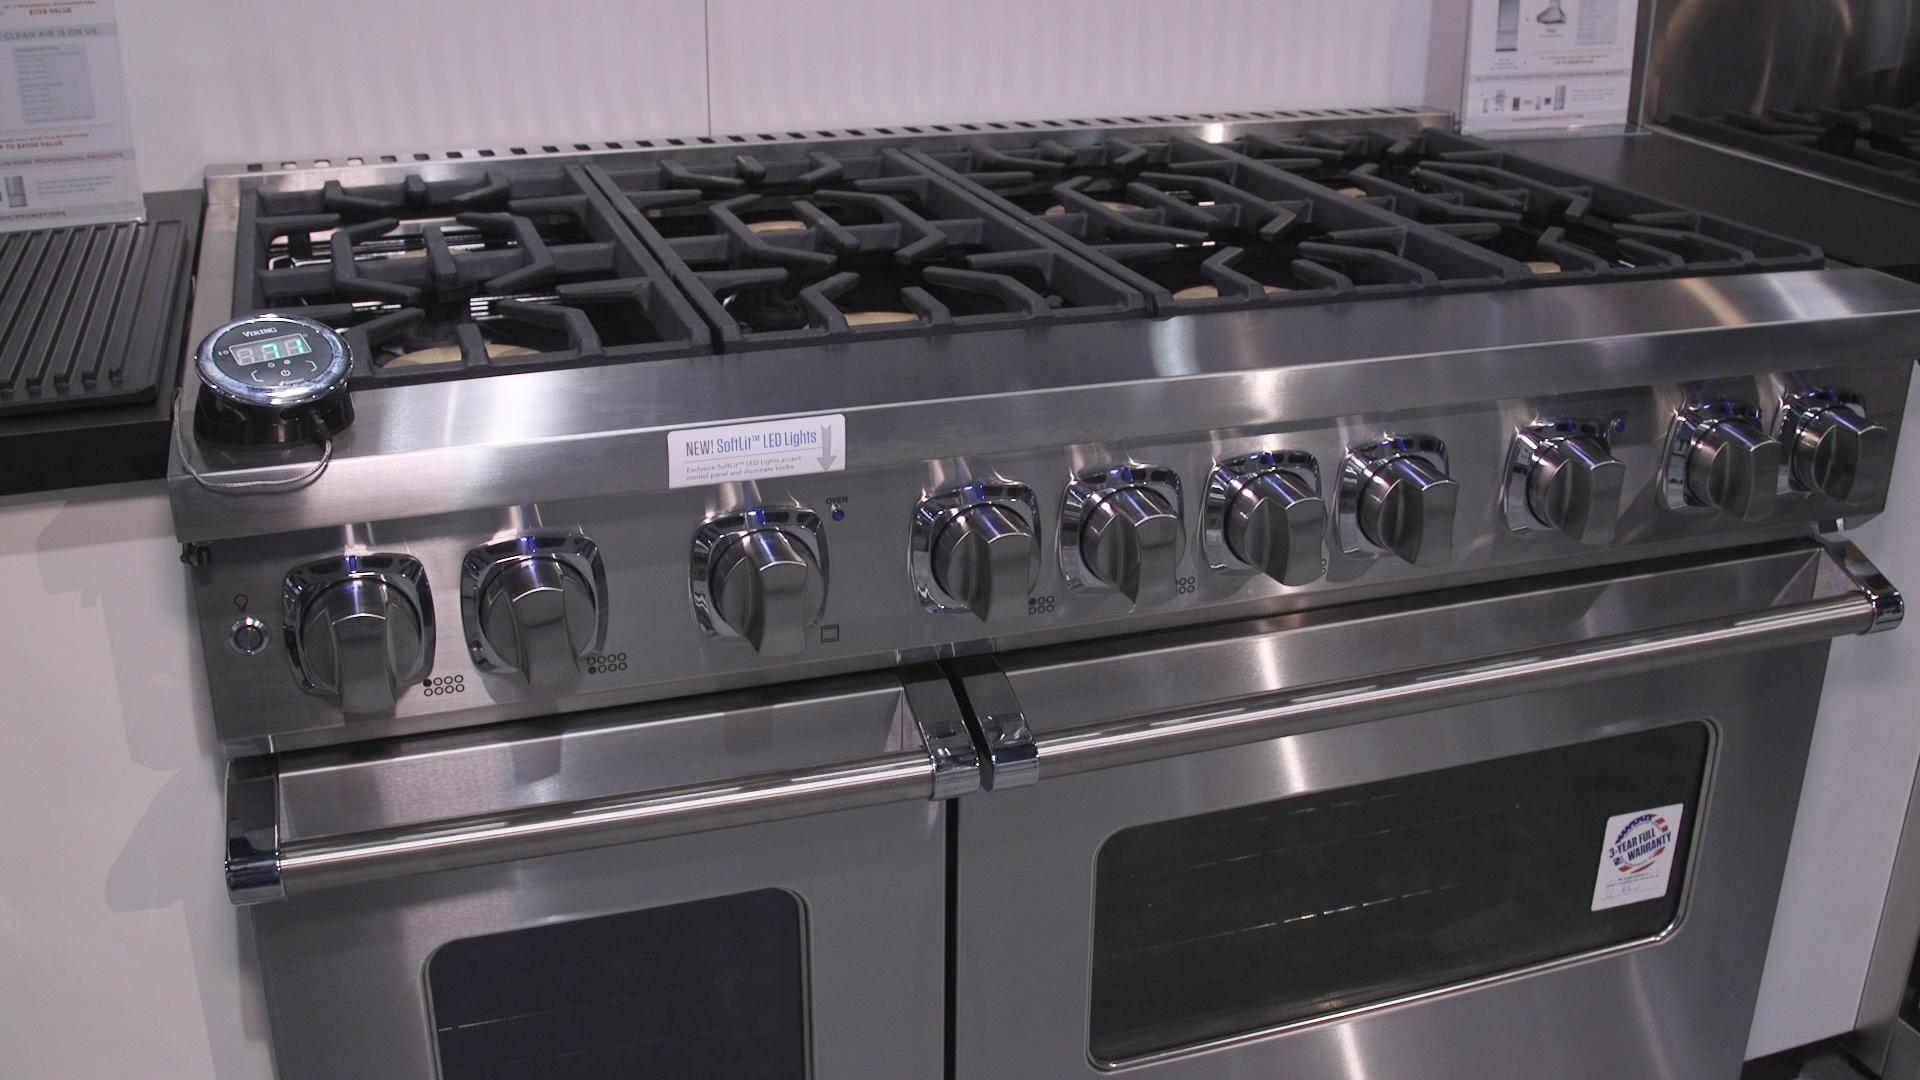 stove htm and ranges offers your to at its ge accessories kitchen parts appliances best range running keep